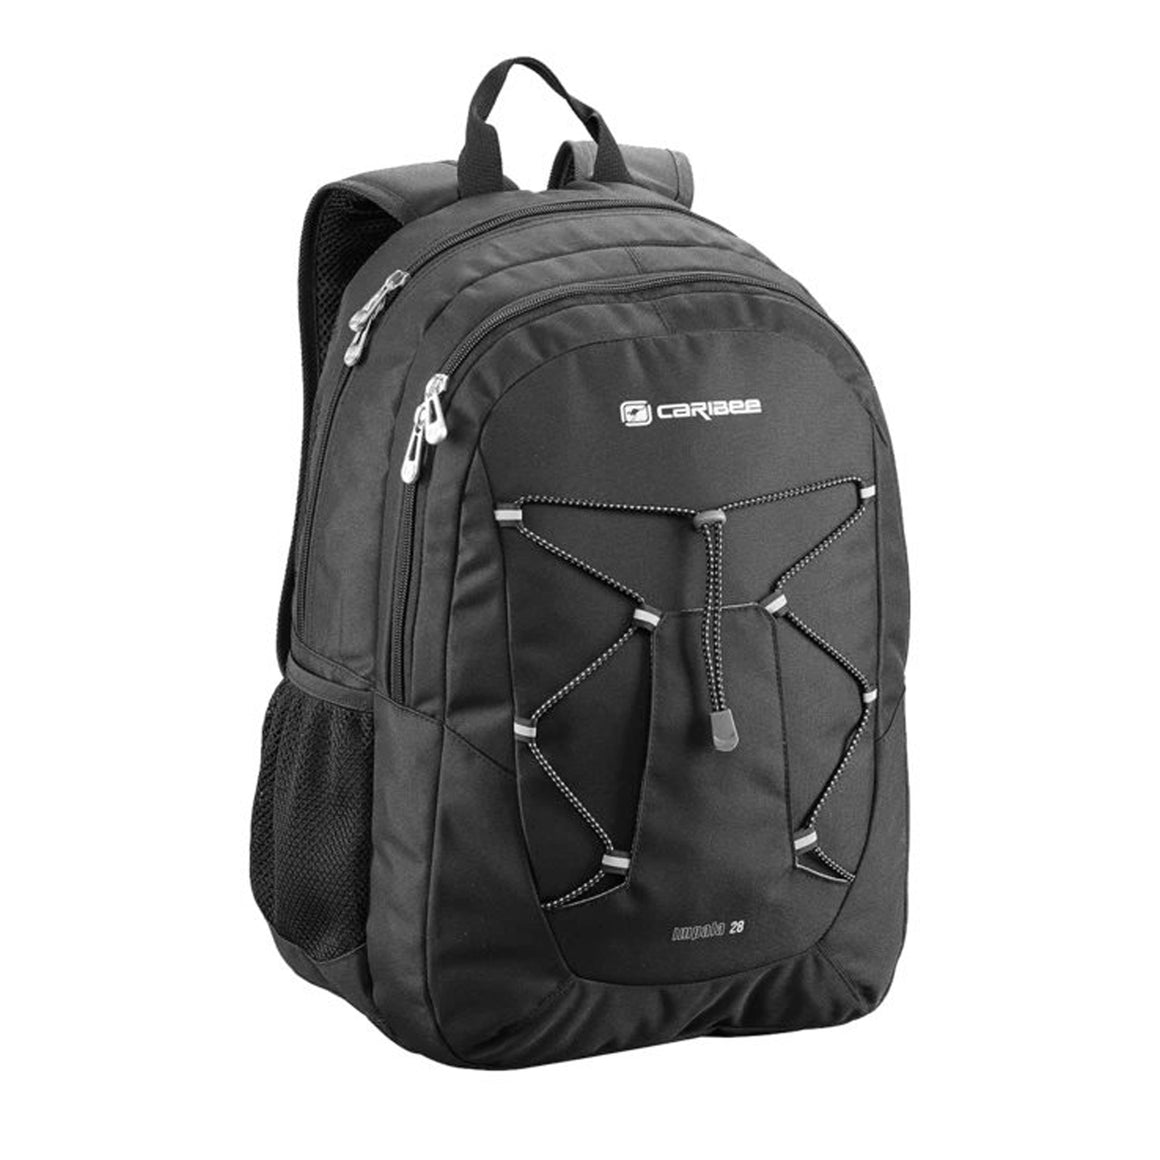 Impala Backpack in Black